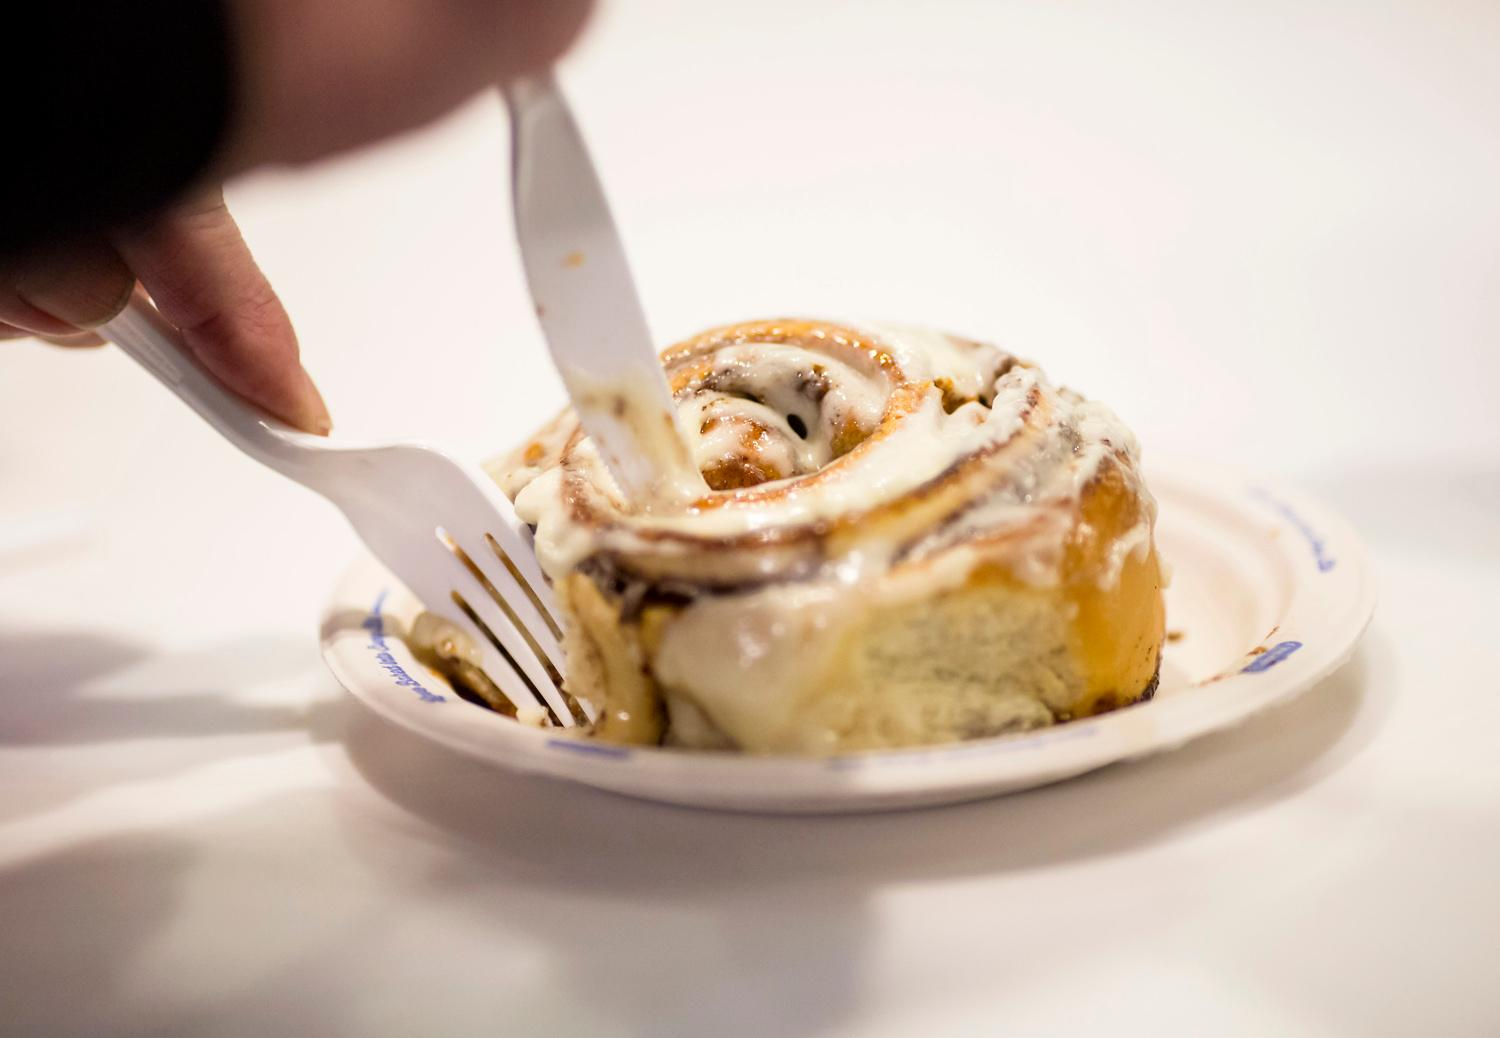 Did you know the first Cinnabon opened in 1985 in Federal Way, WA? Crazy pants! Since it's officially a LOCAL business, we considered it our solemn duty to venture into the kitchen of one local shop to see how the crazy addictive goodness is made. 283,519 calories later...here is a gallery of how these sweet treats are made. Since 1985, there are now over 1,200 locations in 48 different countries. The entire product line is made from scratch, and are baked fresh every half hour in each store. (Sy Bean / Seattle Refined)